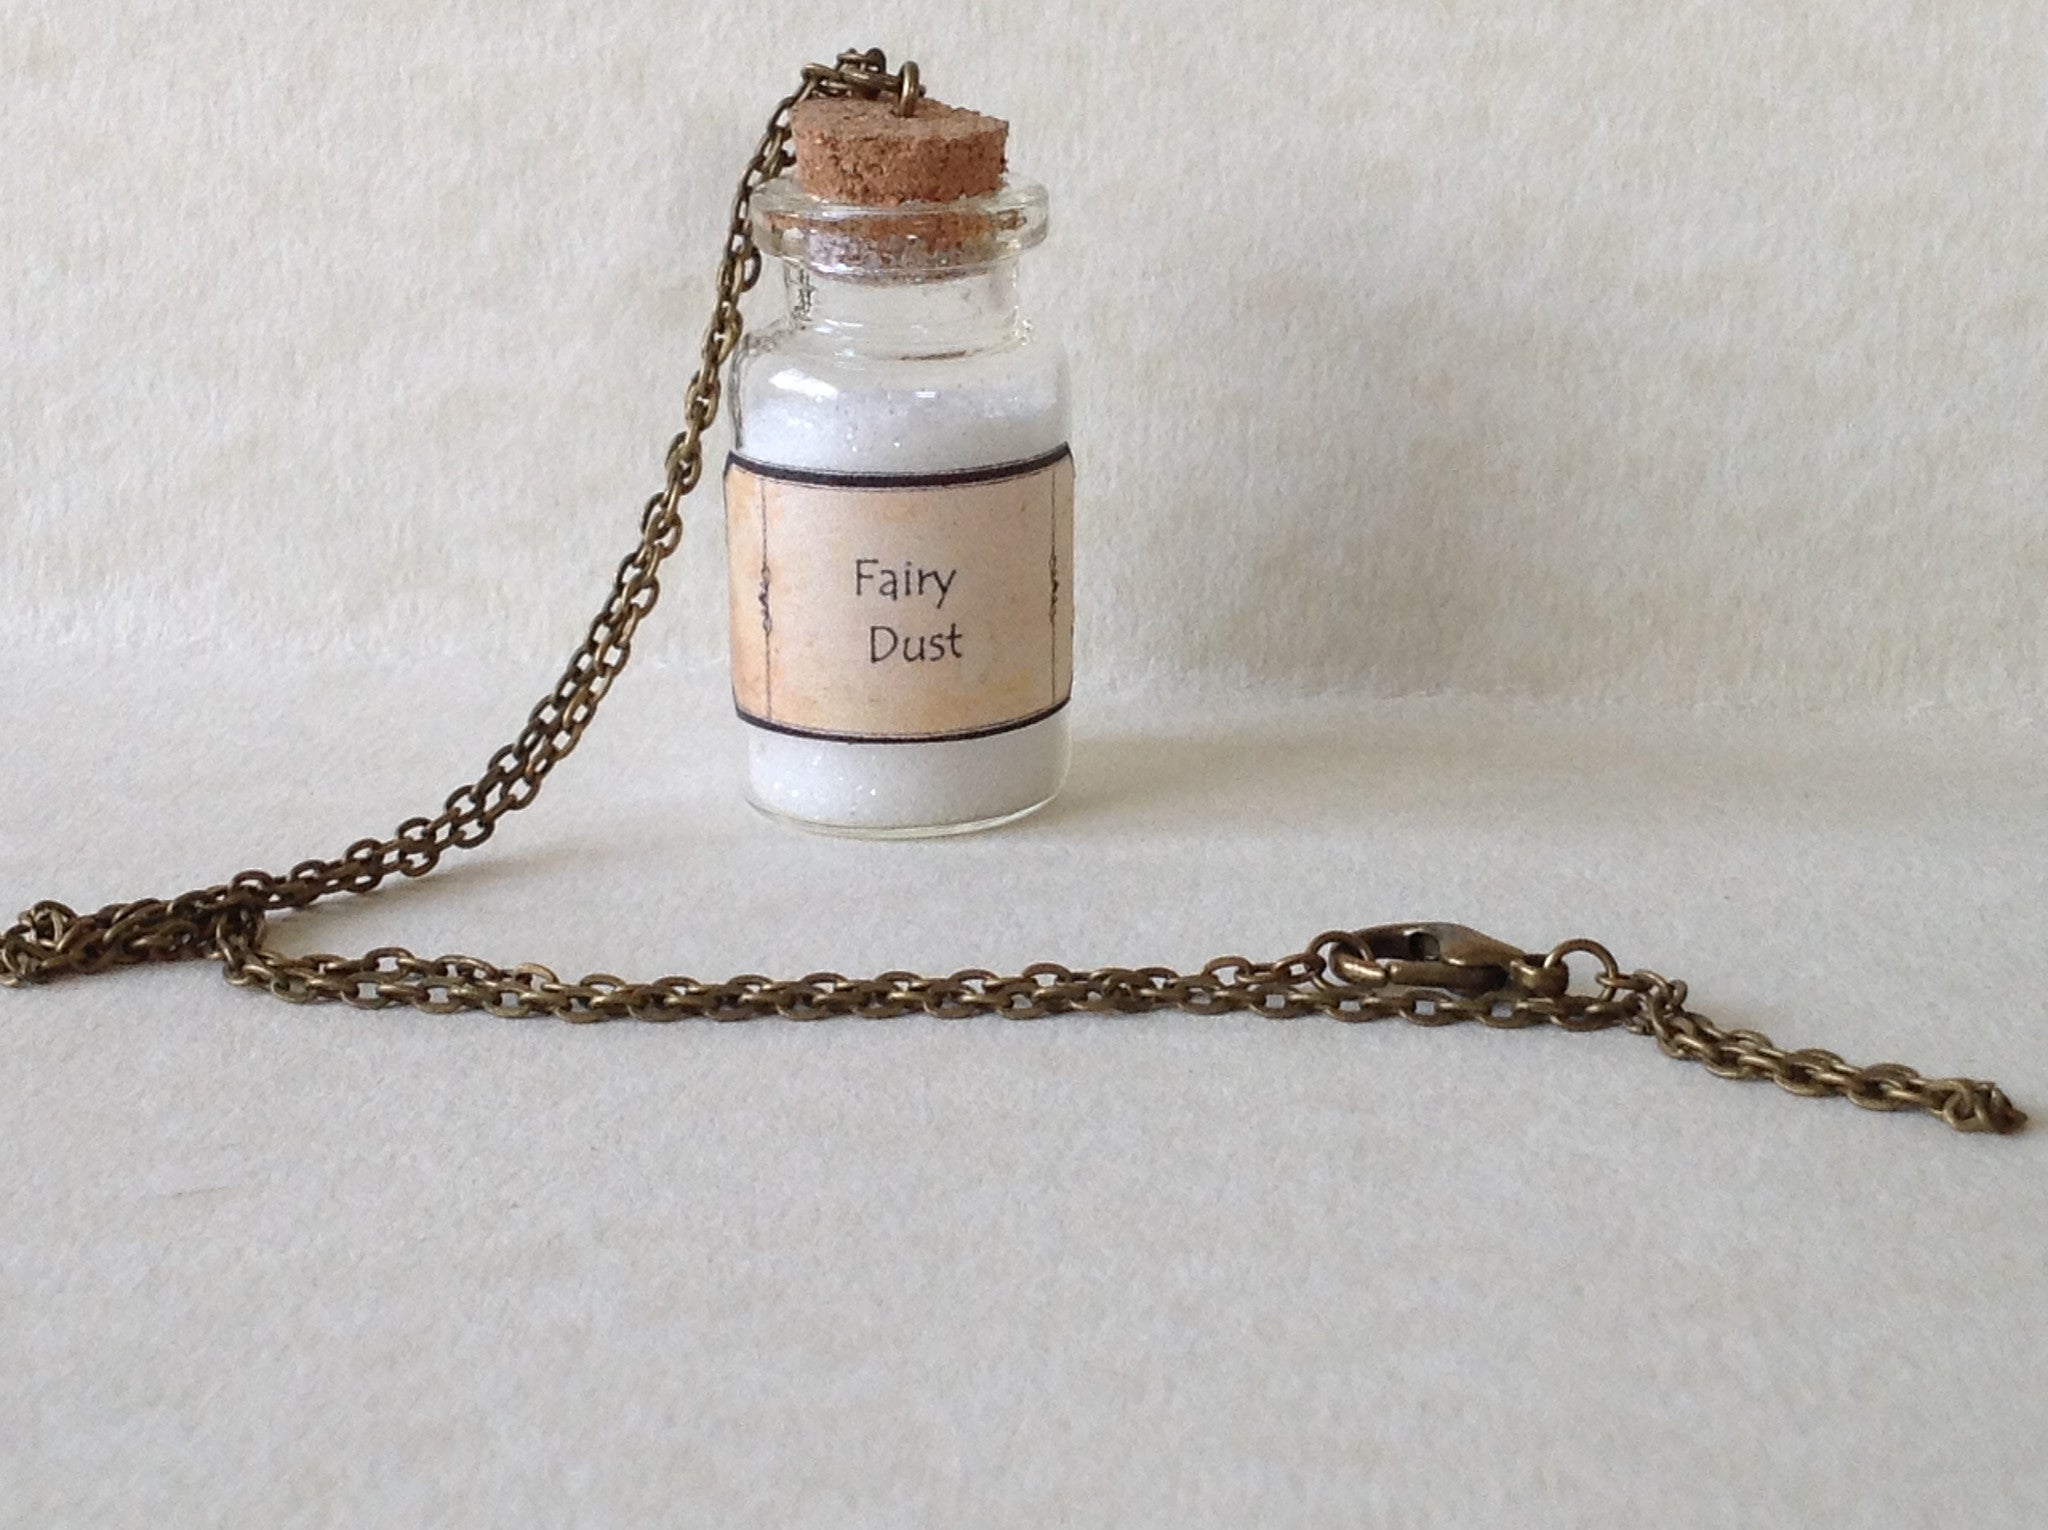 Fairy Dust Bottle Necklace